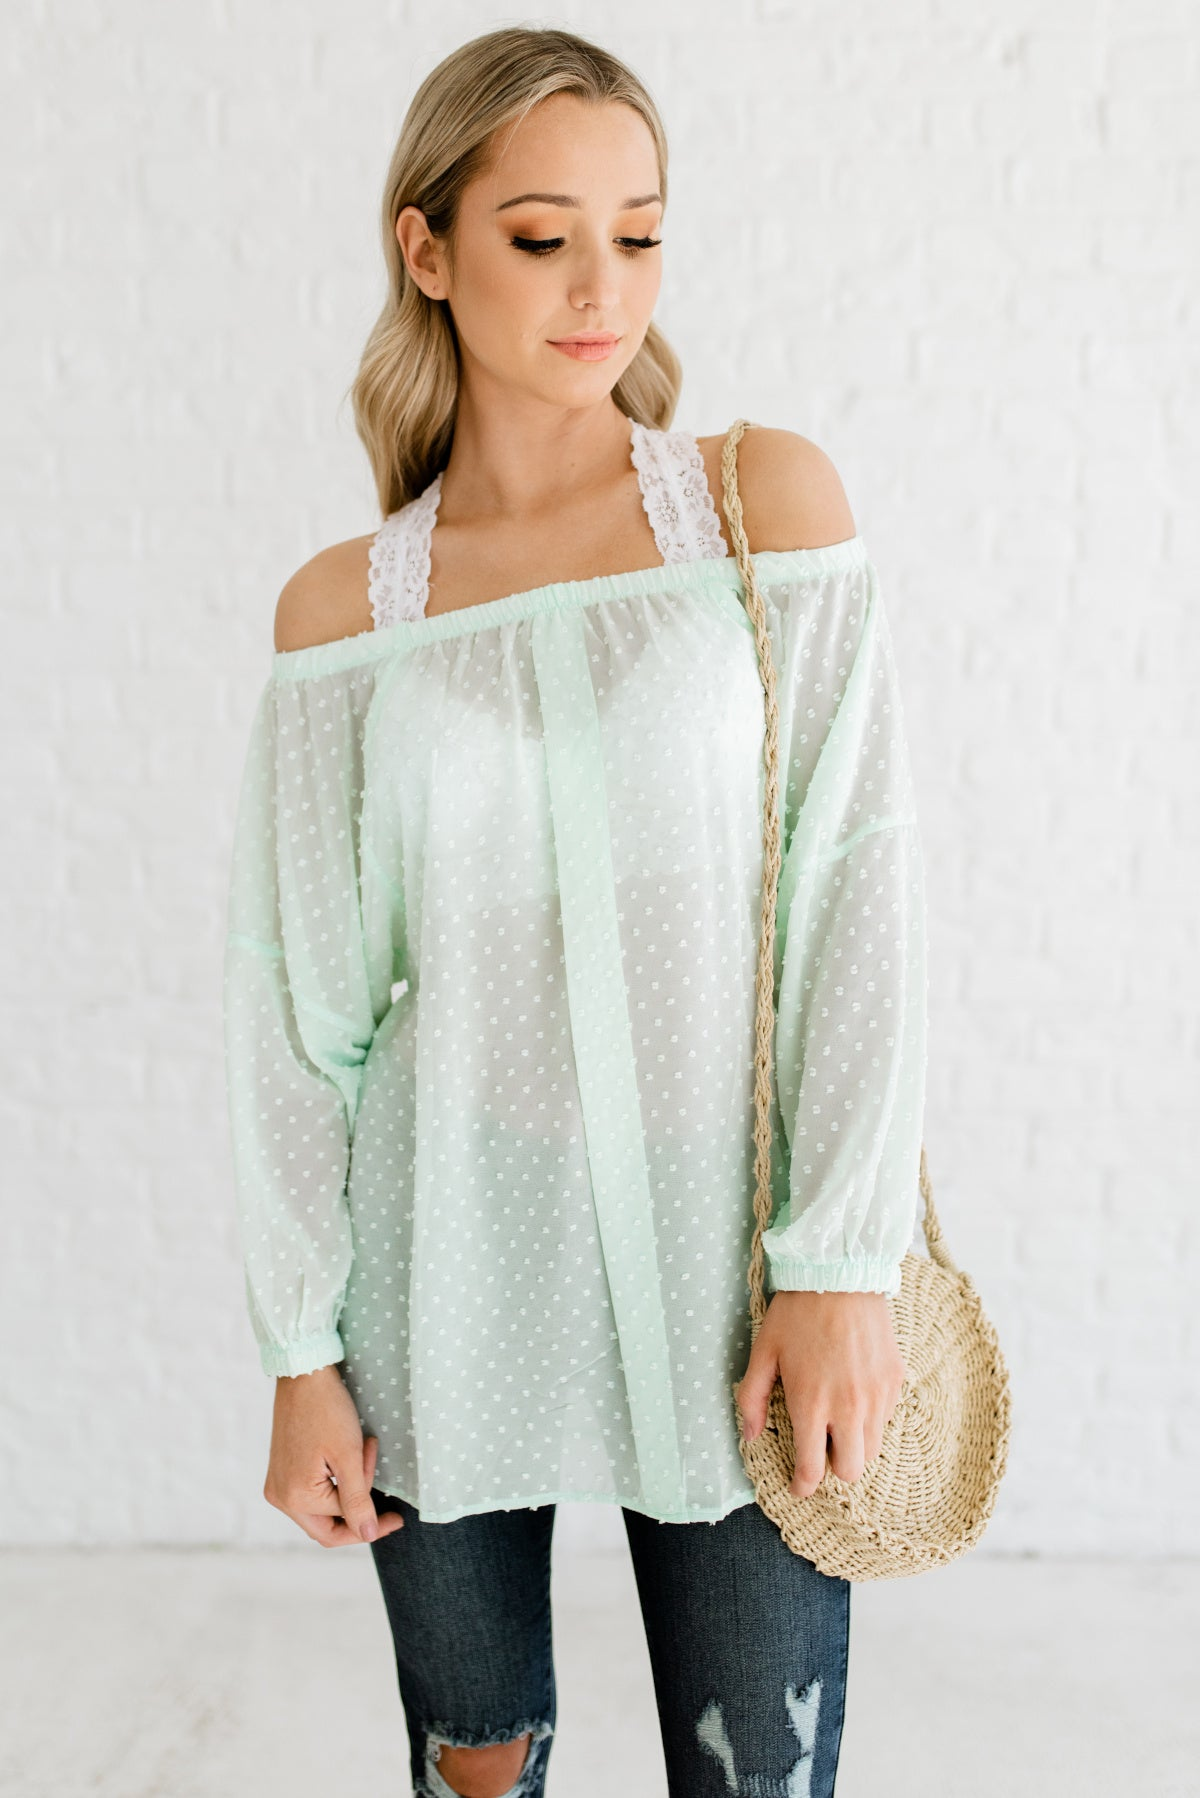 Mint Green Off Shoulder Boutique Tops for Women